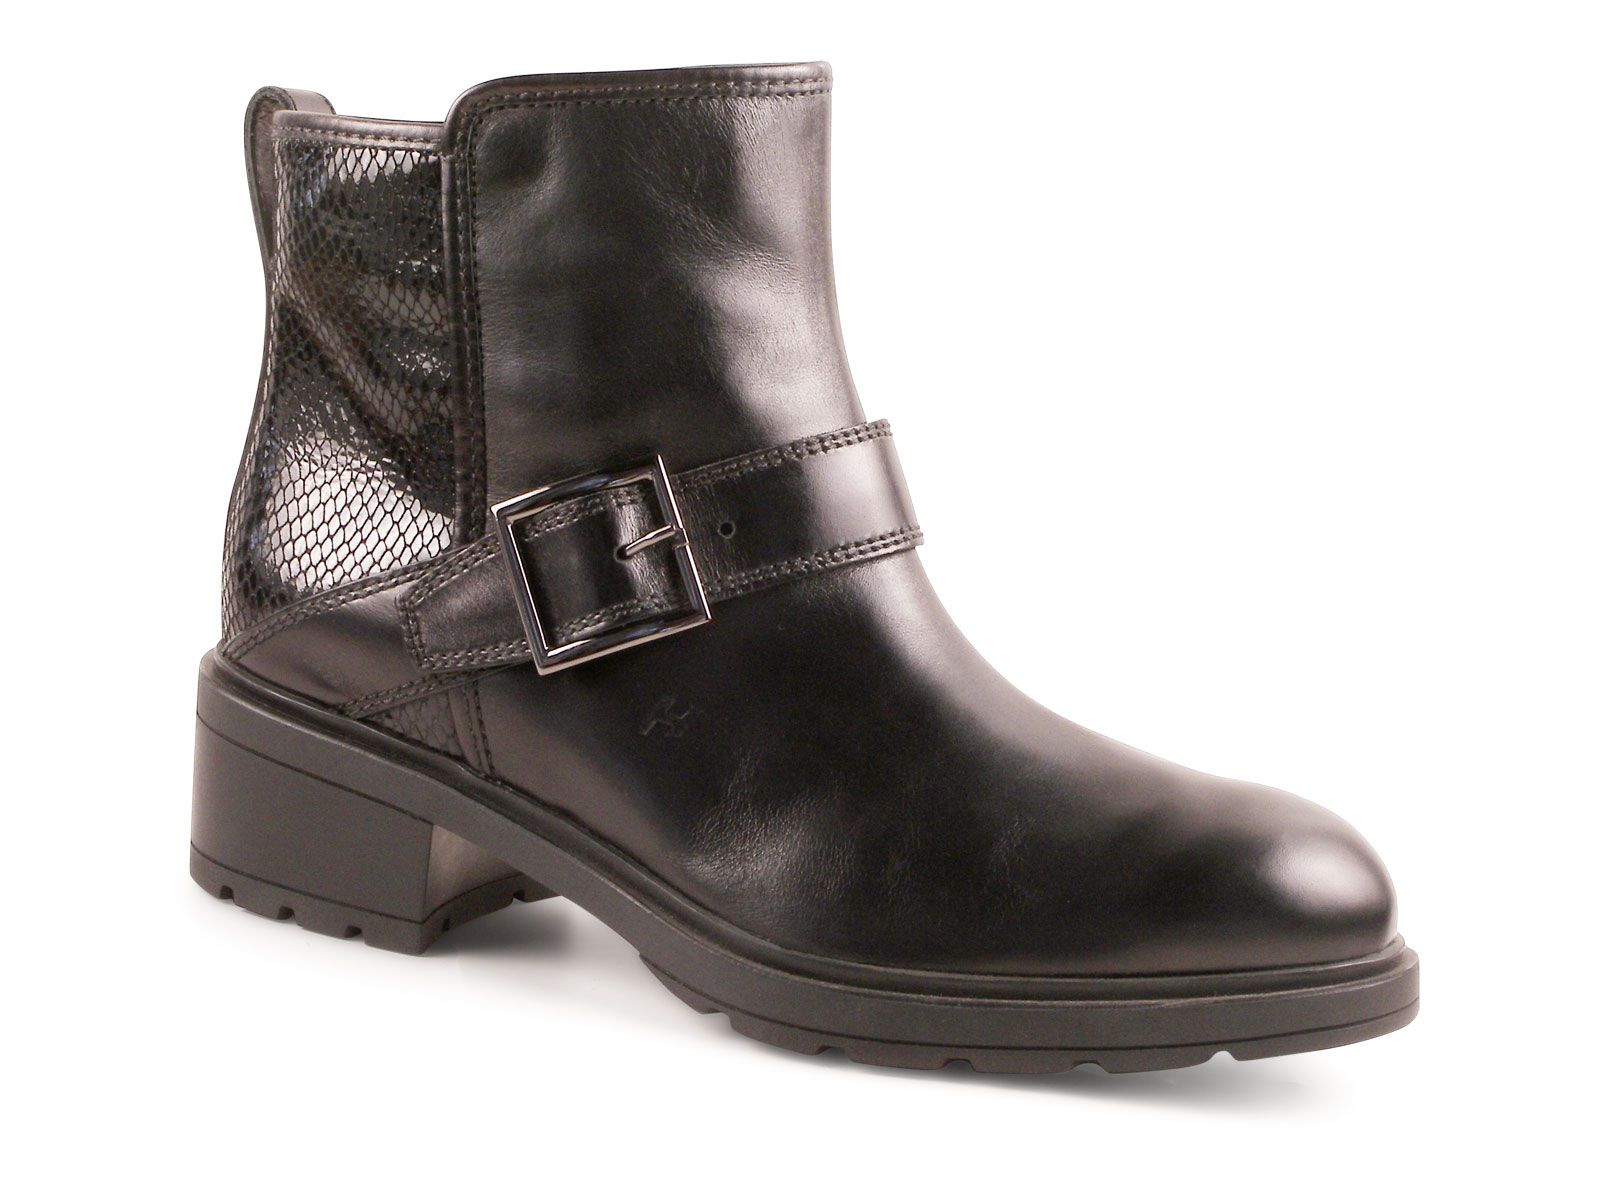 Hogan H222 womens sneakers in metallic shiny leather. Black Leather Ankle  BootsPythonWomen's Shoes